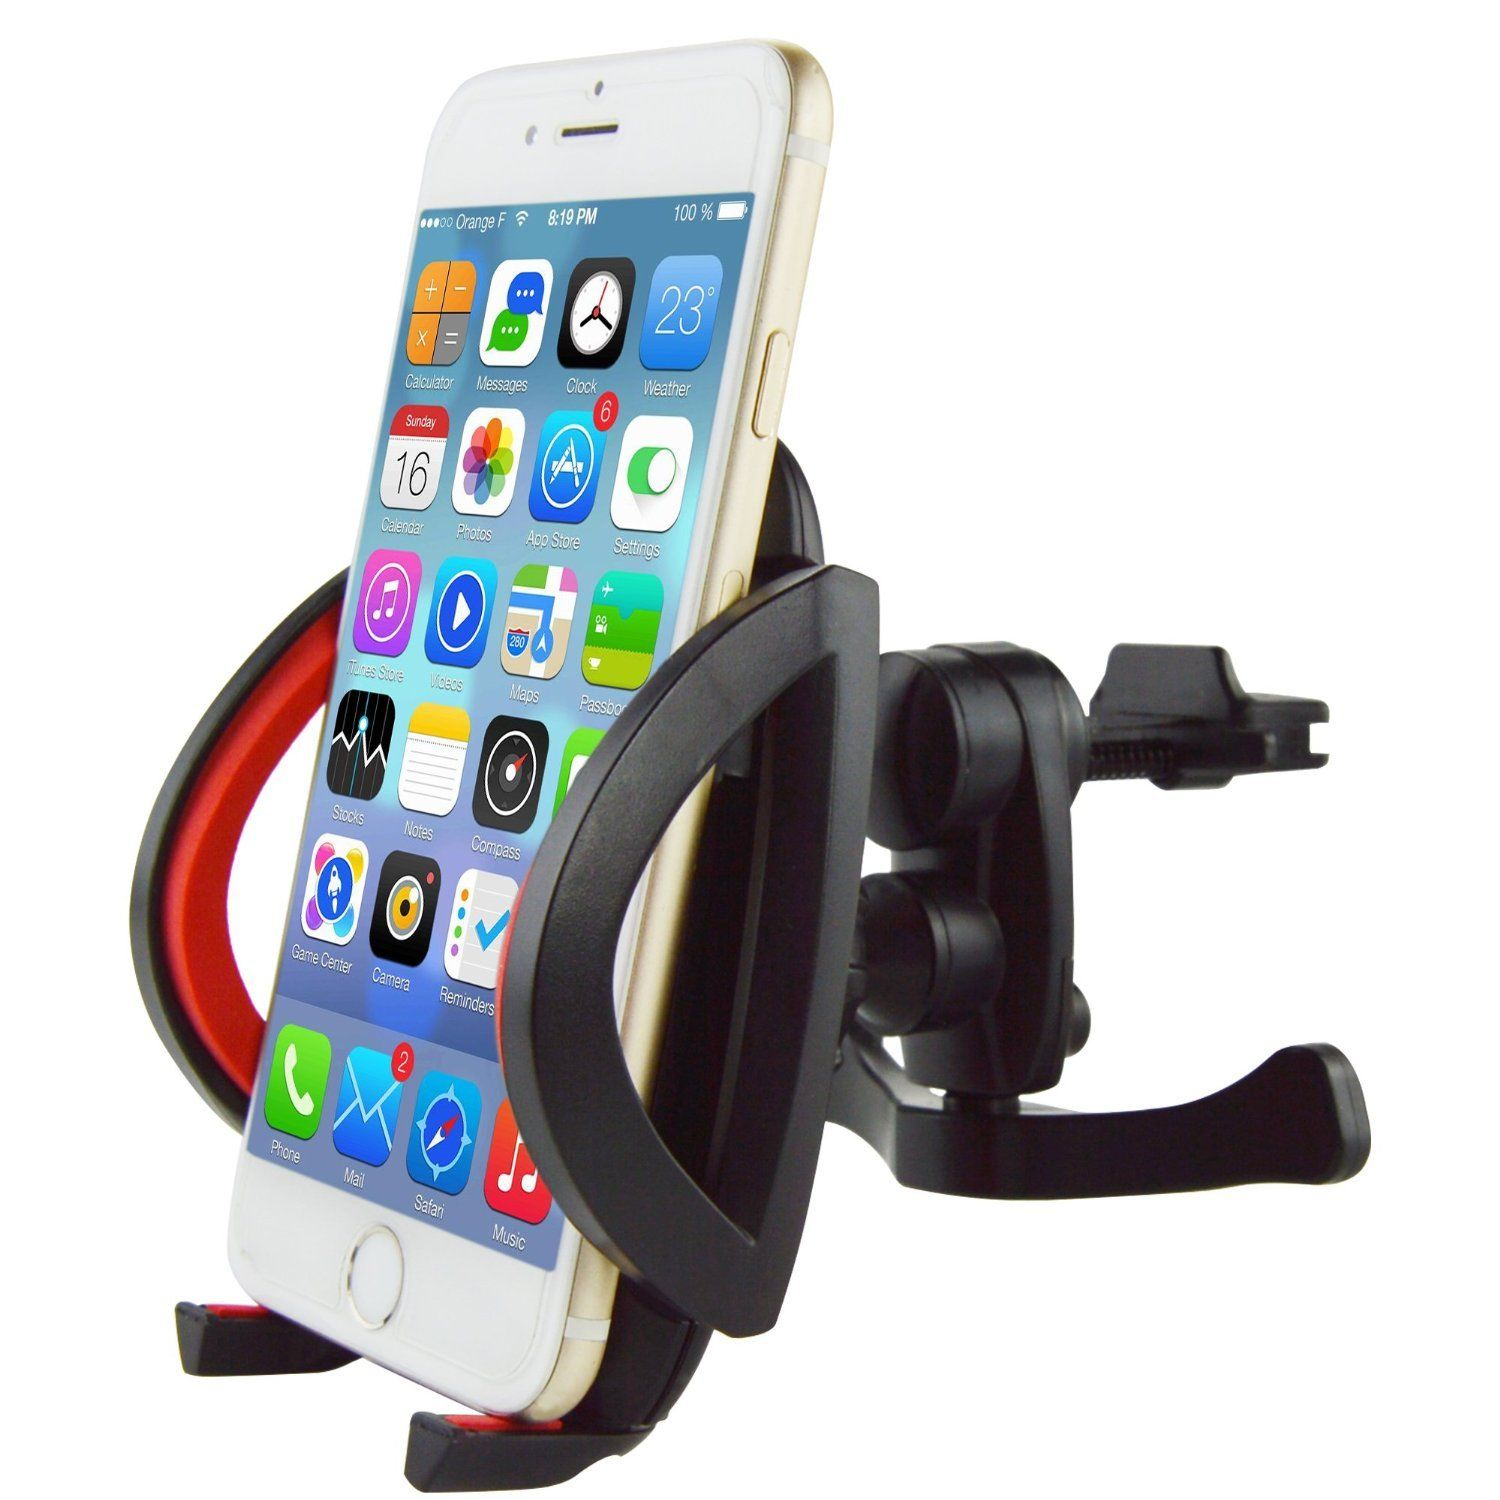 Car Vent Mount,IPOW Universal Cell Phone Car Air Vent Mount Holder Cradle For iPhone 6 6+ 6S 6S Plus 5S 5,iPod Touch,Samsung Galaxy S6 S6 Edge S5 S4 S3 Note 2/3